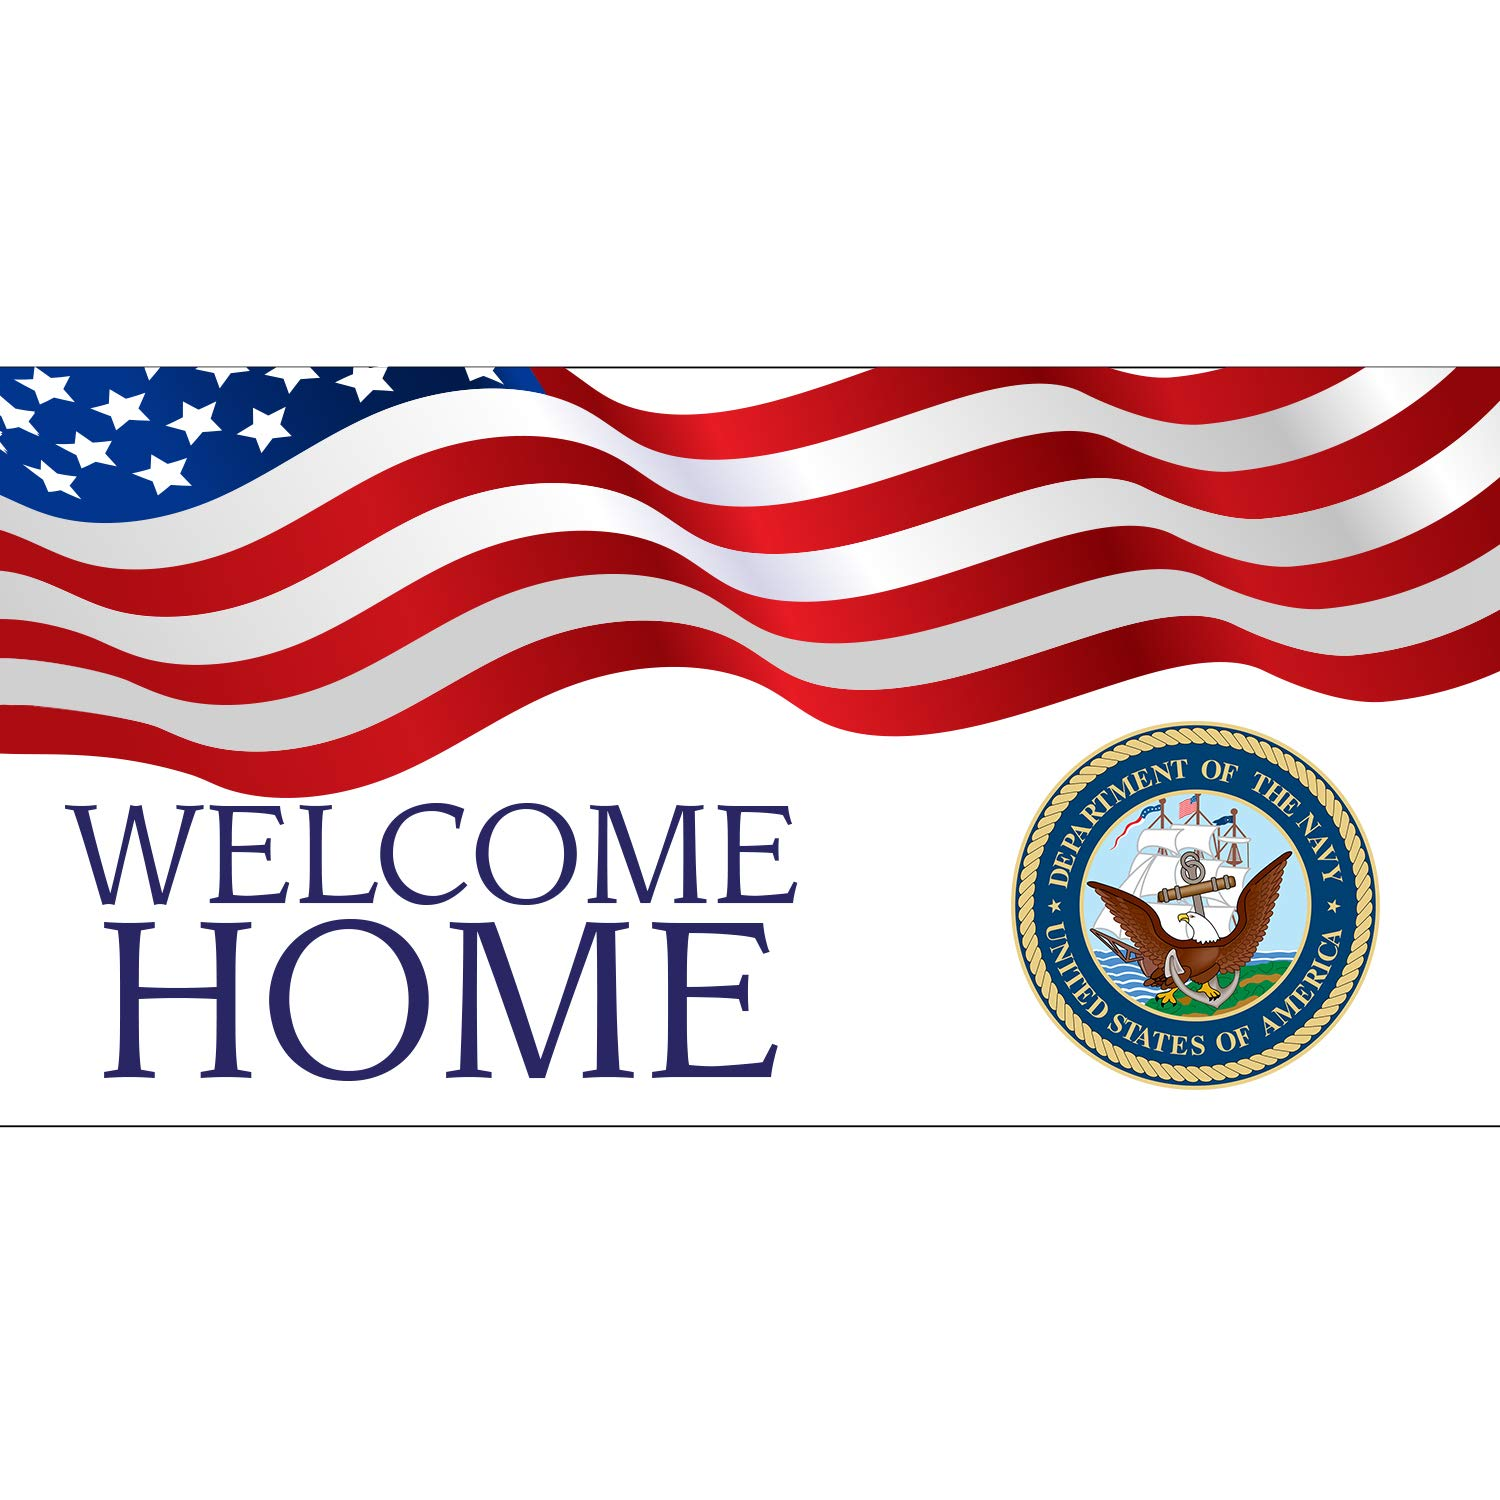 BANNER BUZZ MAKE IT VISIBLE Welcome Home Department of The Navy USA Banner 11 Oz High Quality Vinyl PVC Flex Banners with Hemmed Edges & Metal Grommets Free (5' X 3')